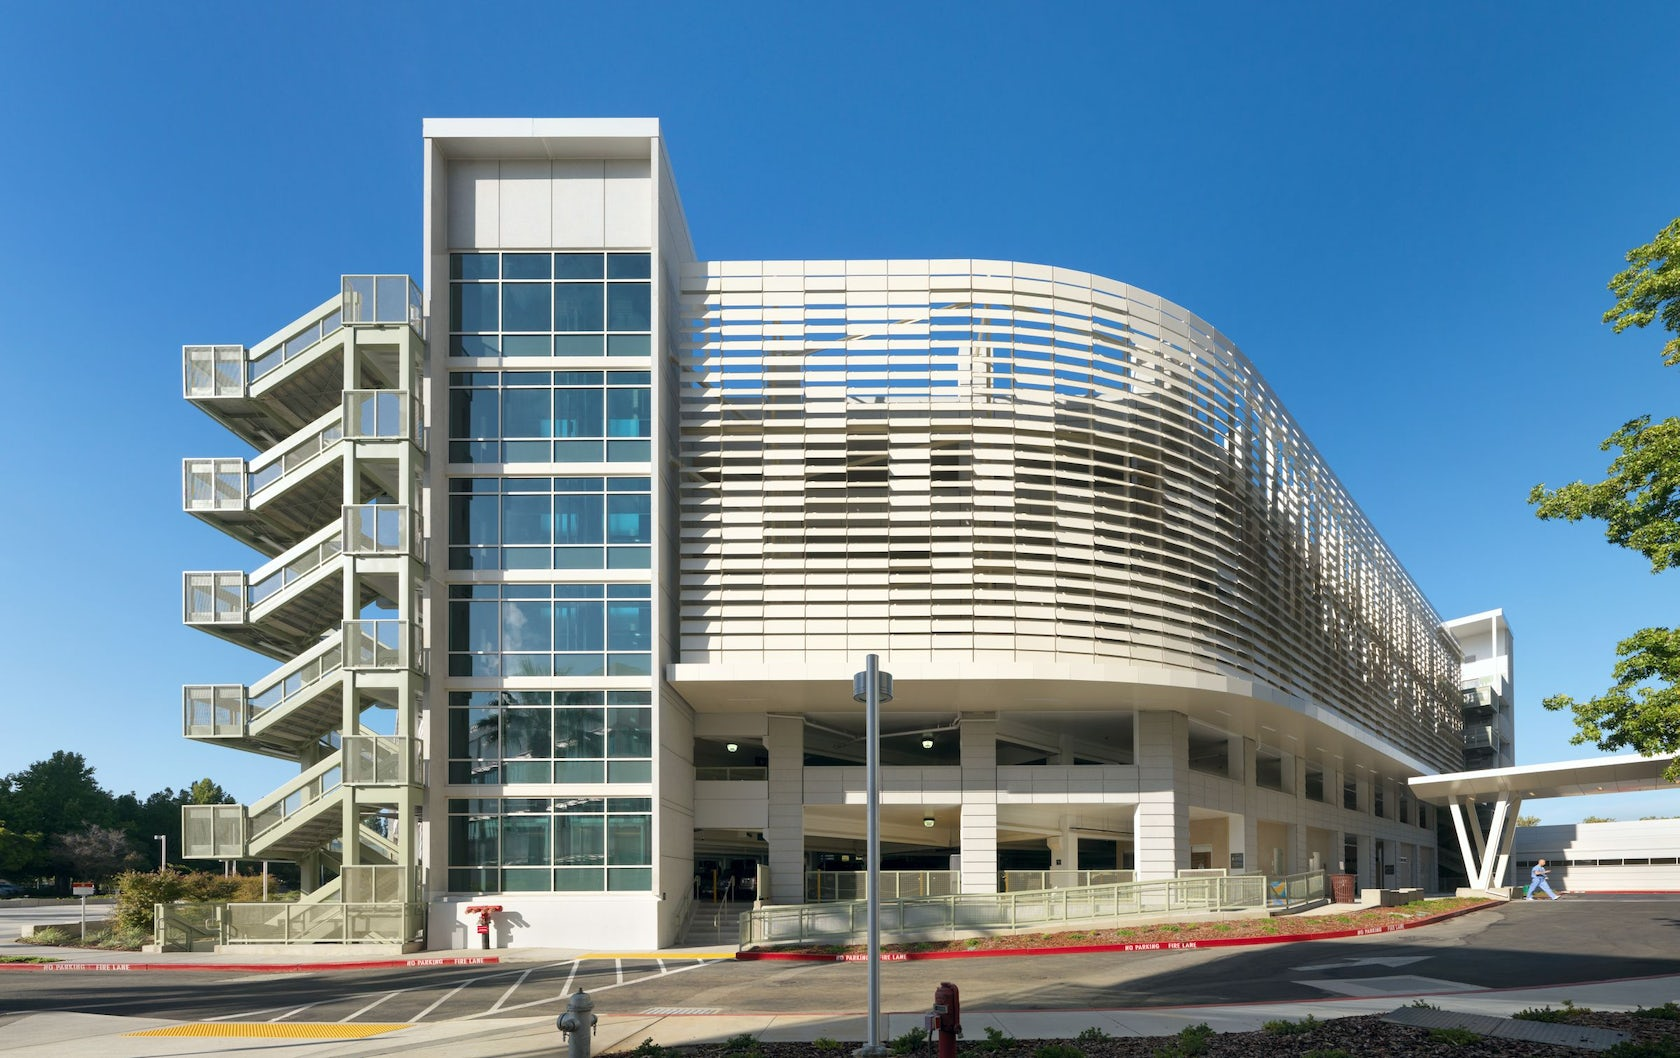 Uc davis medical center parking structure iii architizer for Architecture firms sacramento